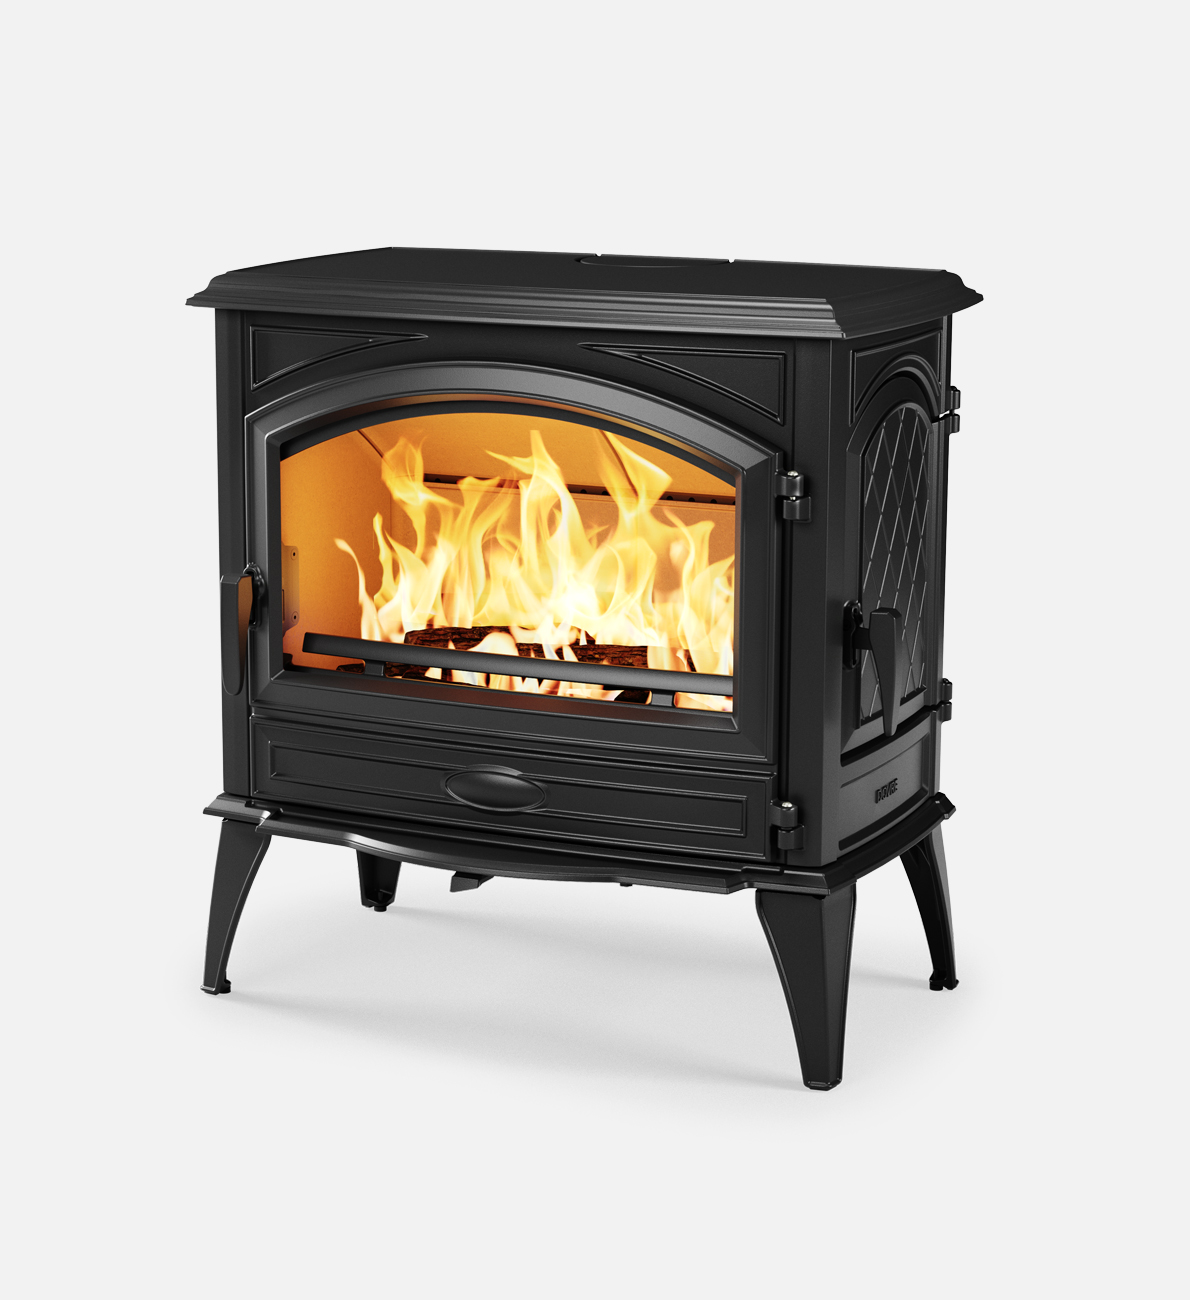 Dovre peisovn 760 wd side